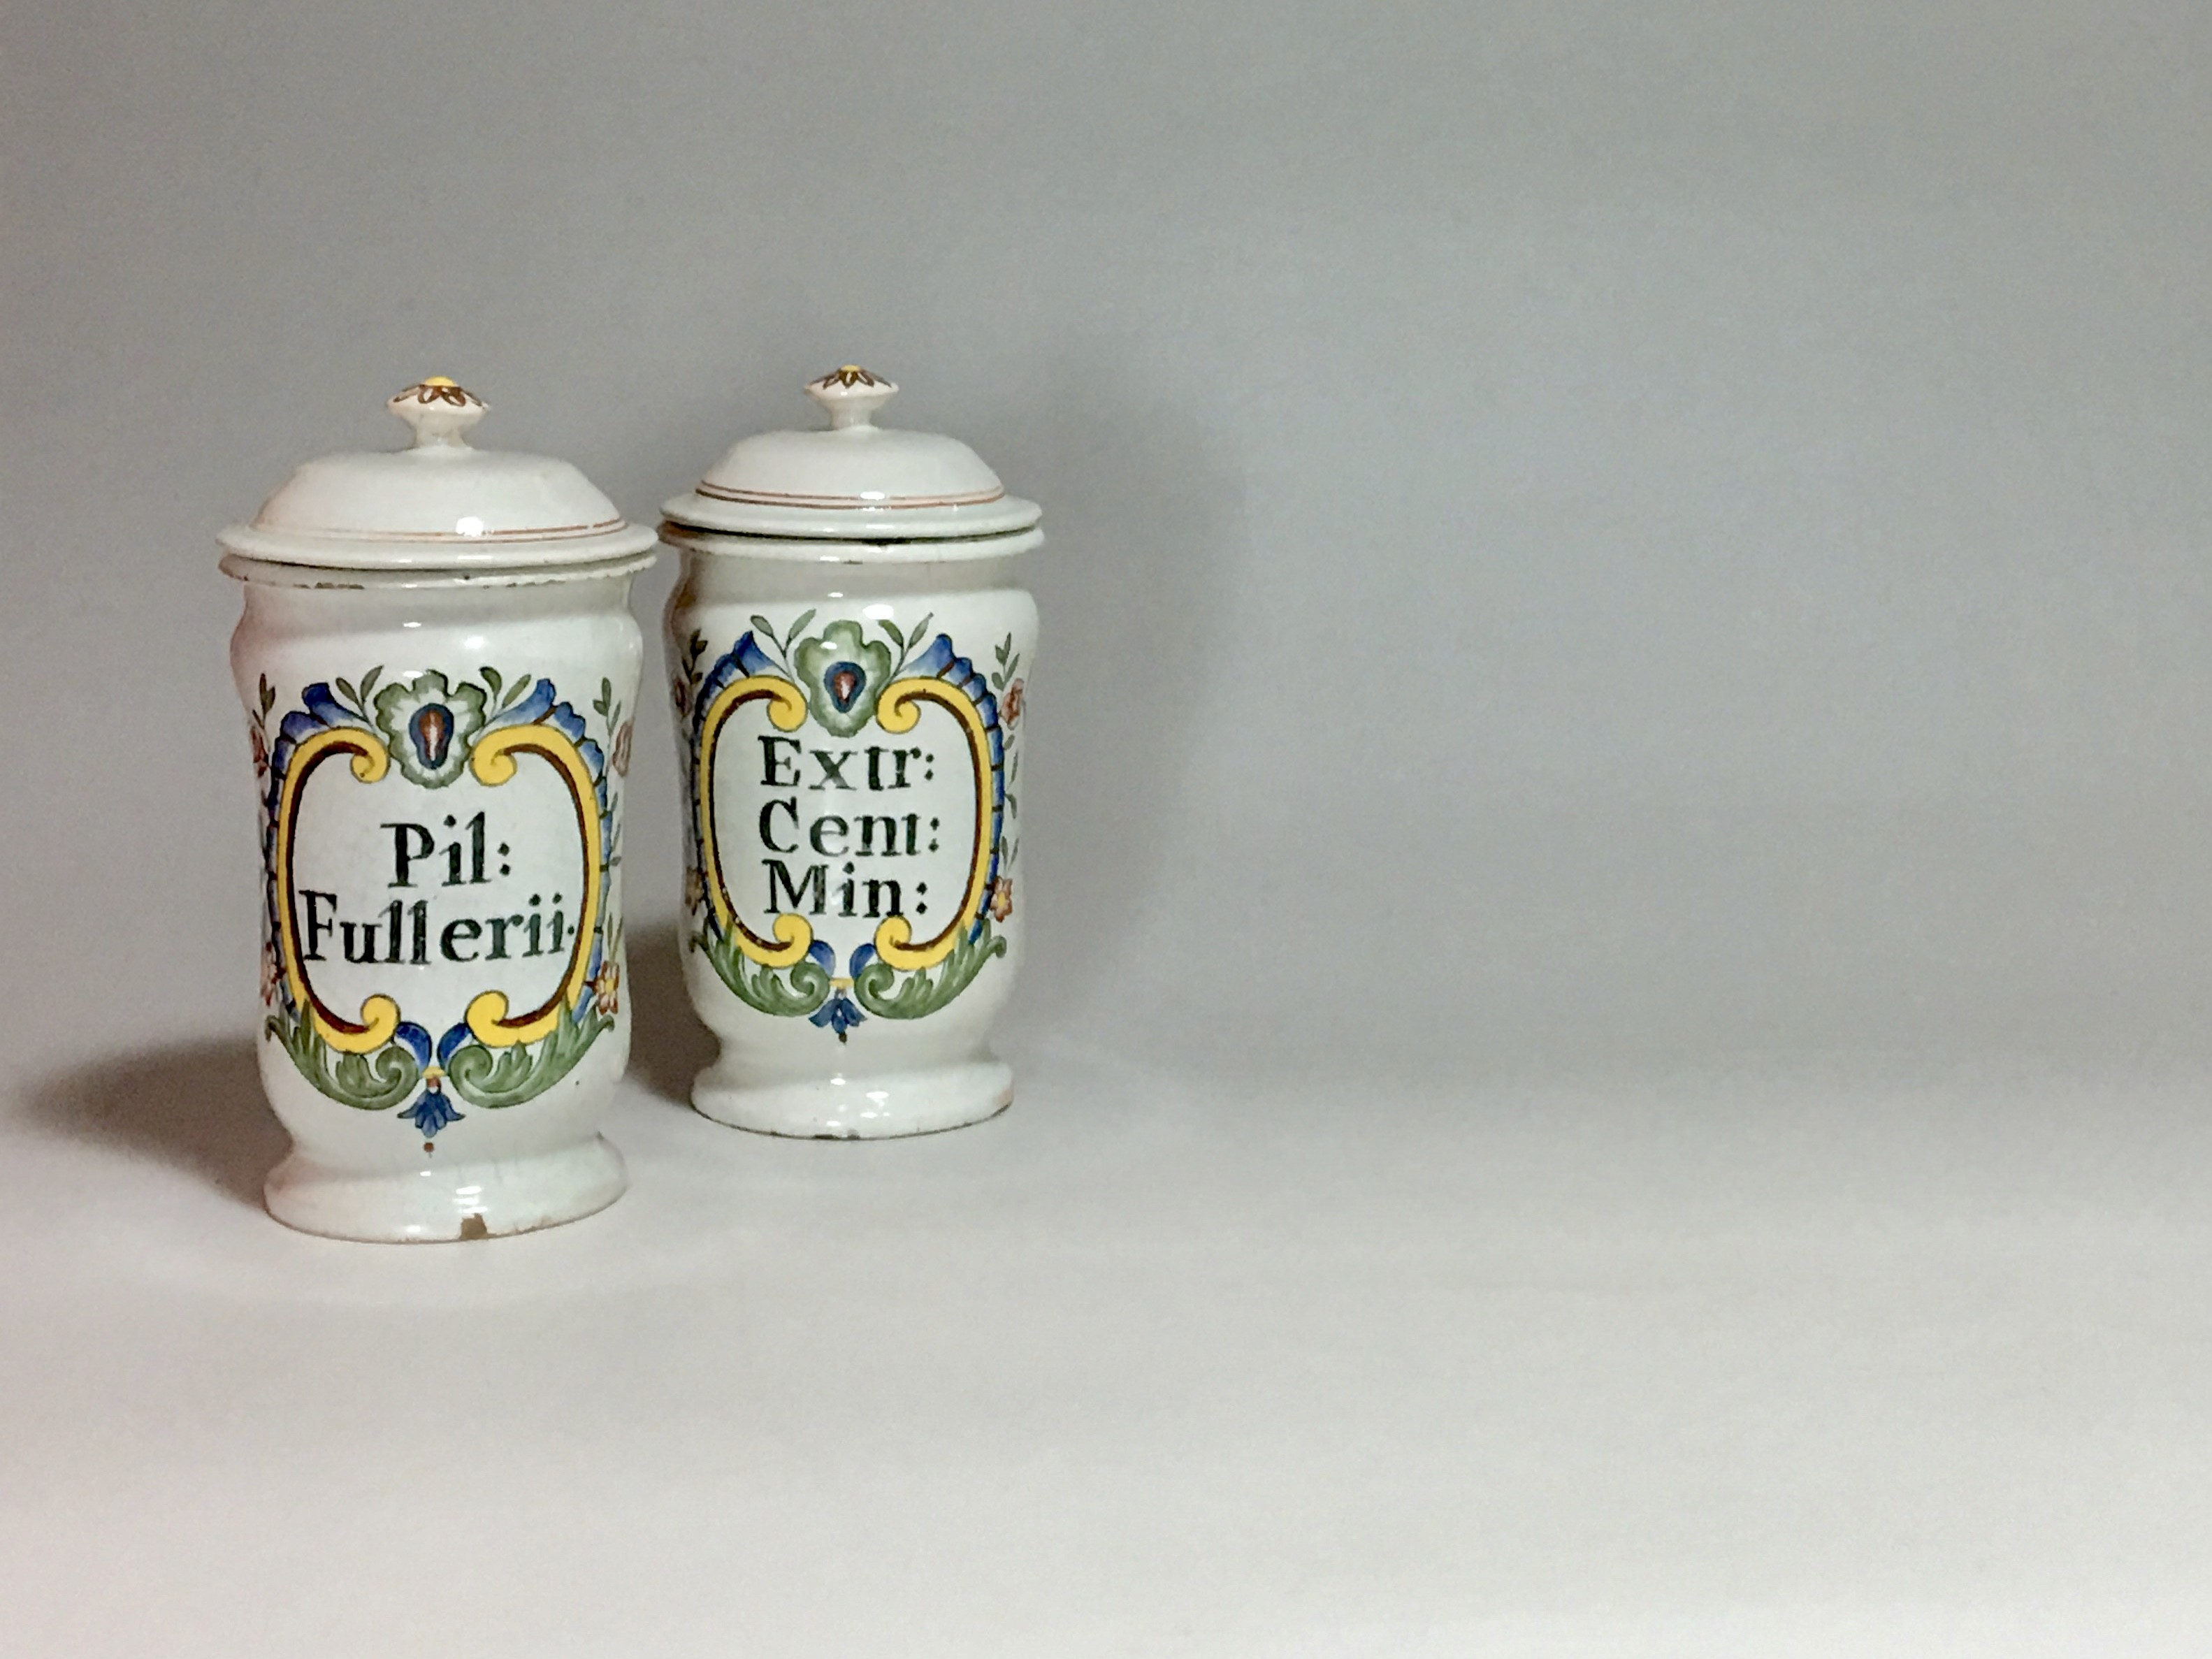 ROUEN - PAIR OF SMALL PHARMACY JARS - EIGHTEENTH CENTURY